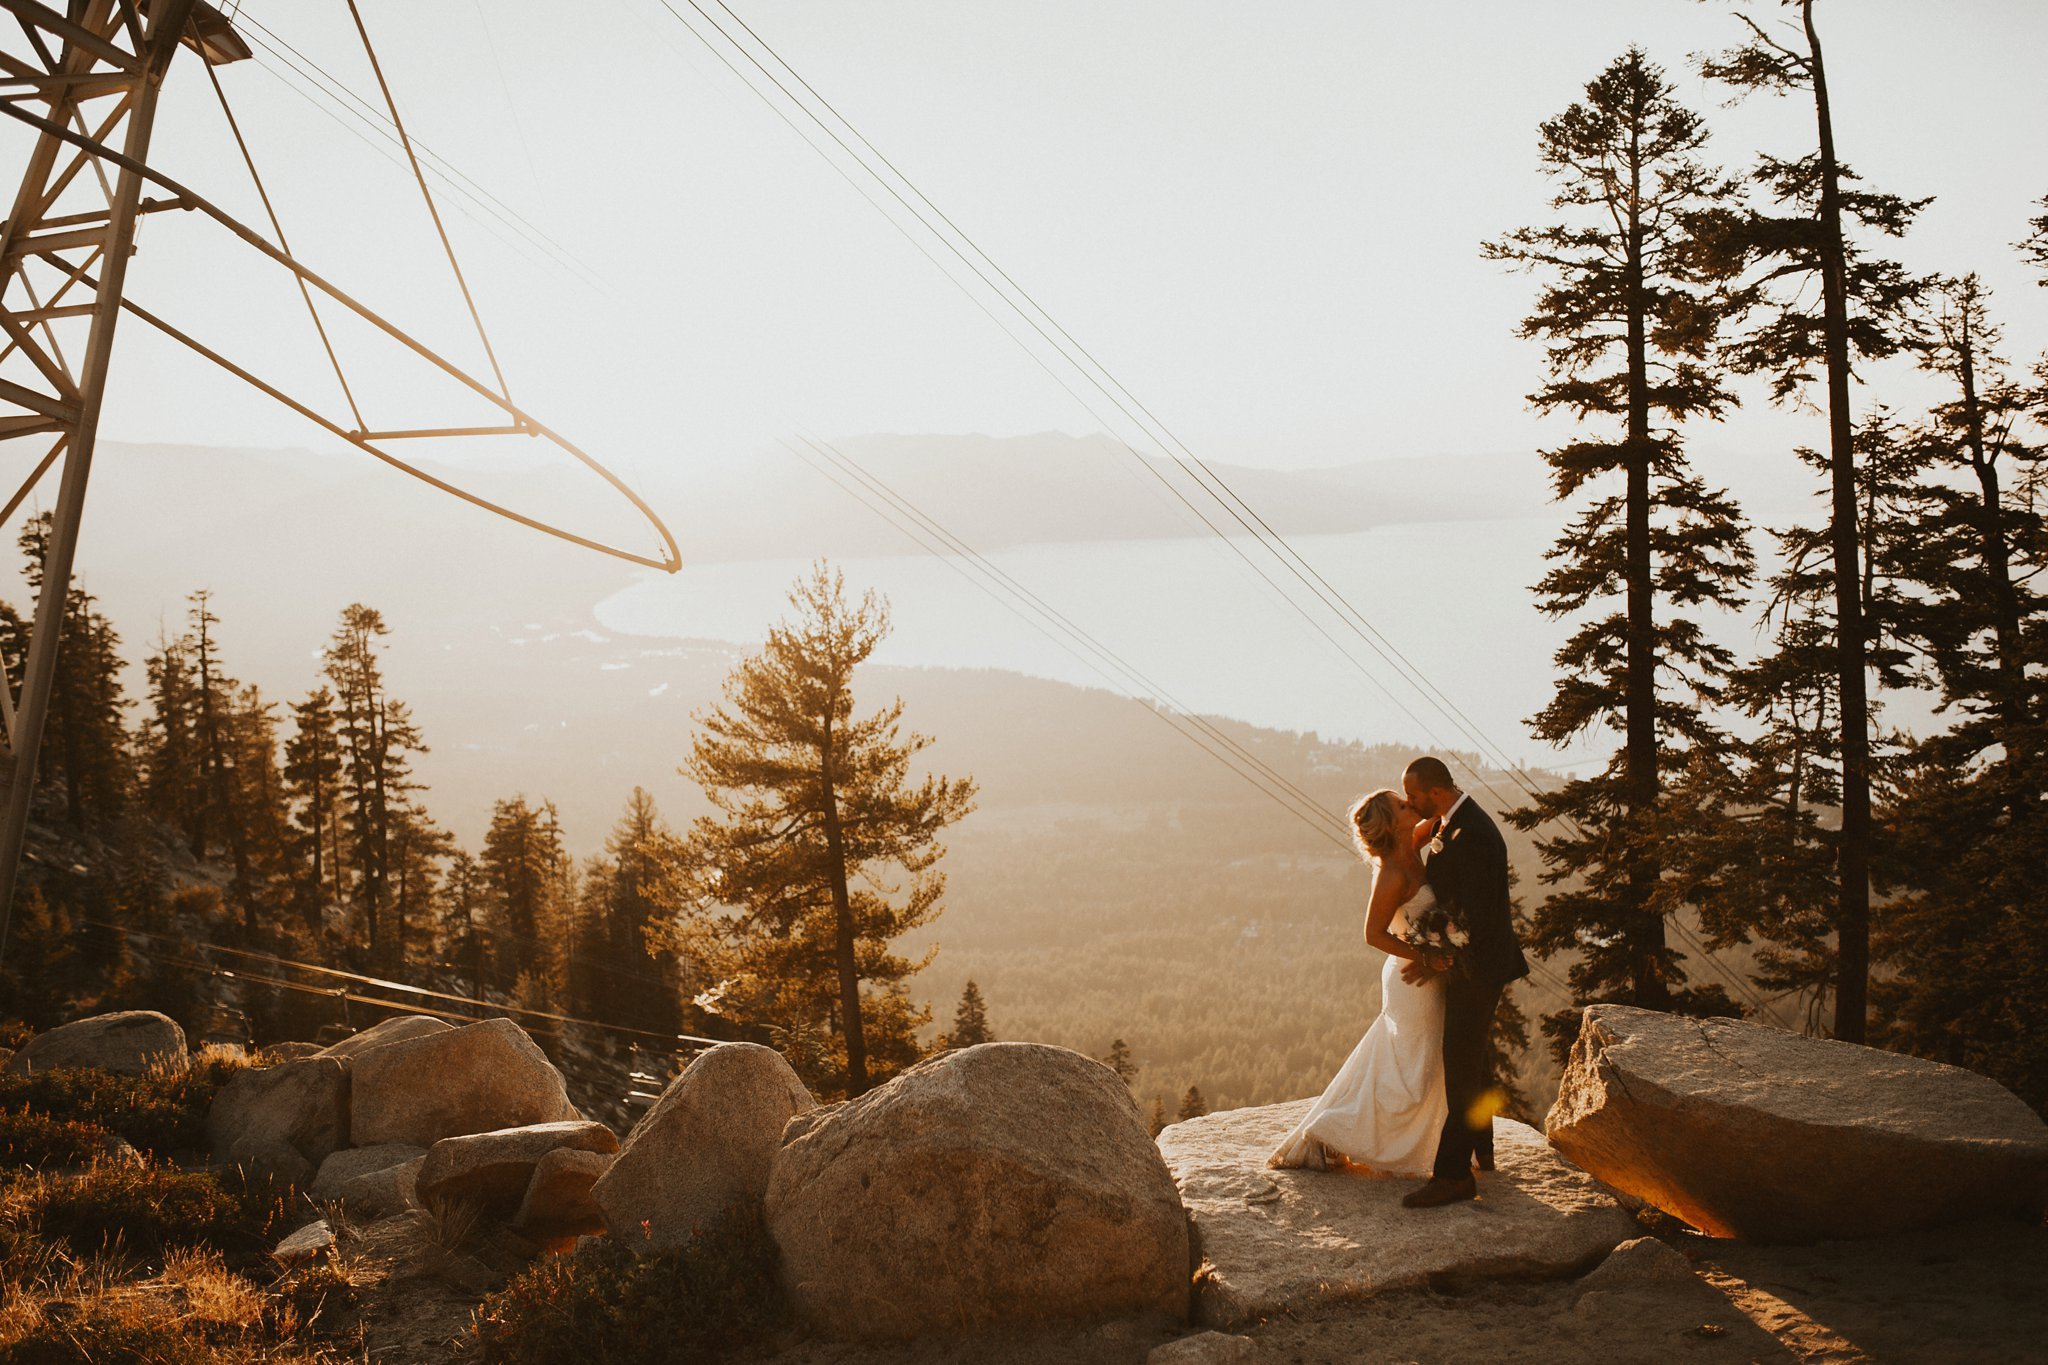 180830_wedding_stephanie_heavenly_south_lake_tahoe_danielle_alysse_photography_sneak_peek_4_WEB.jpg